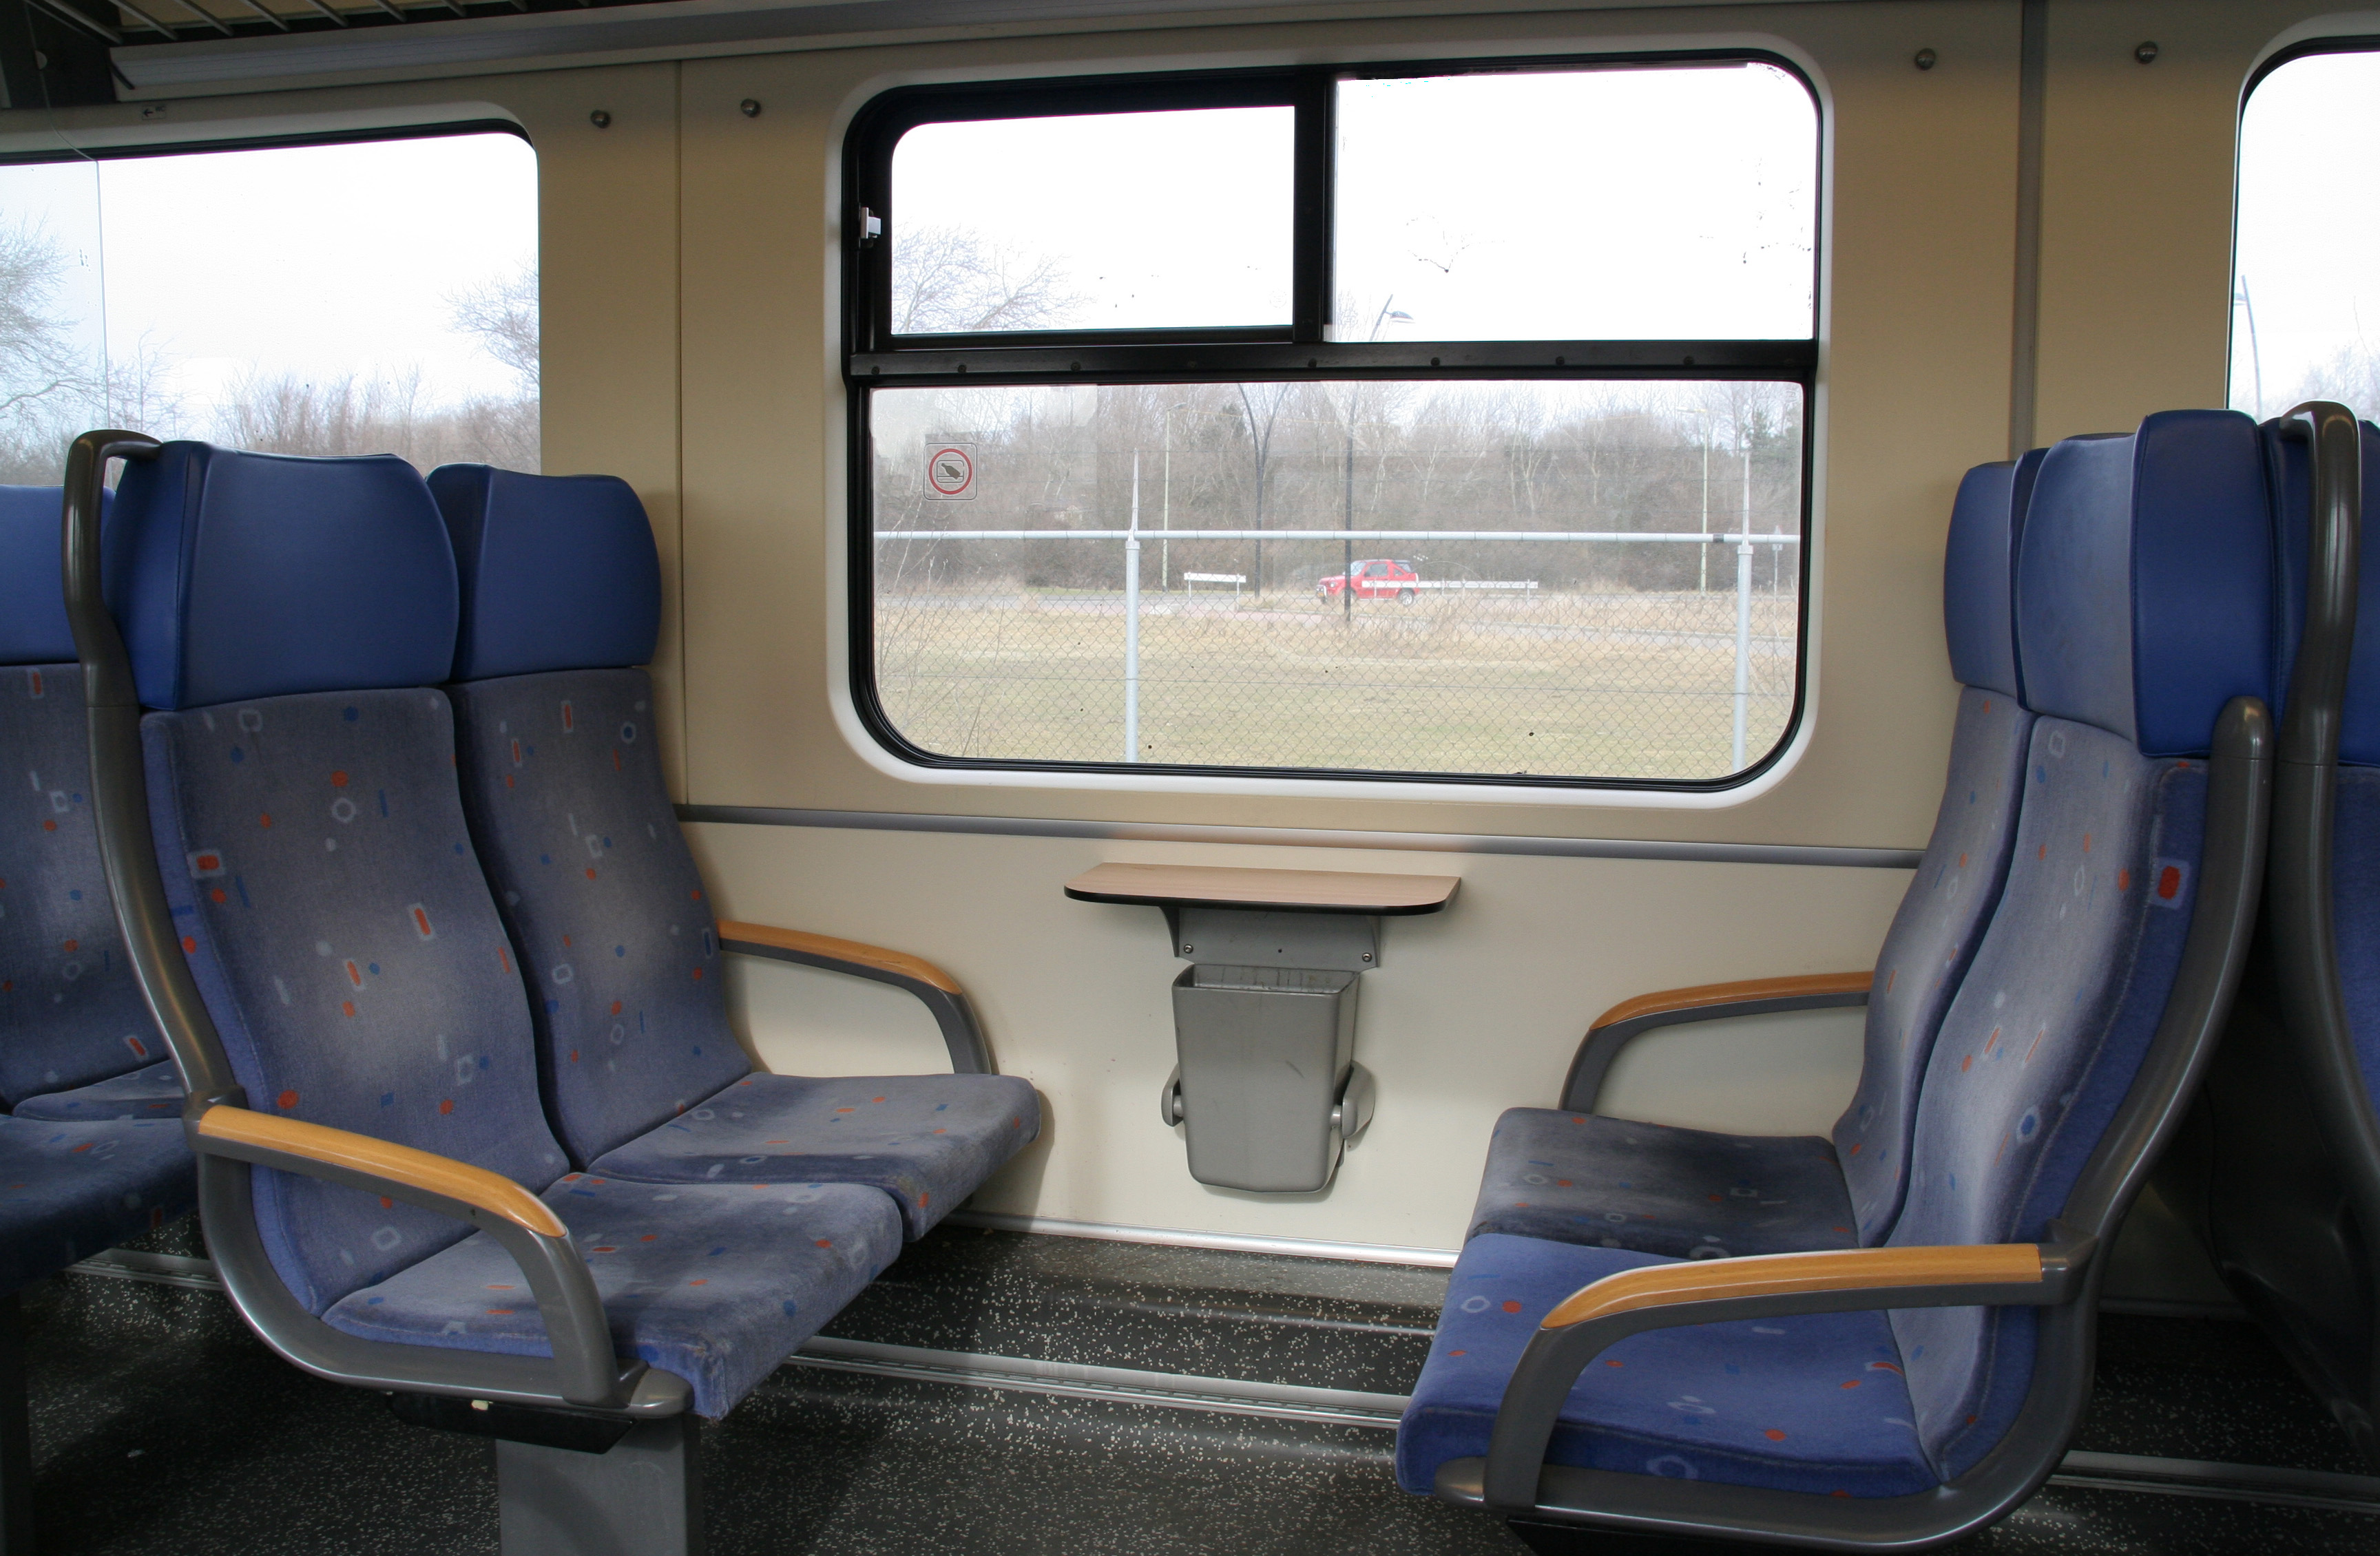 Interieur Trein File Sprinter Interieur 2e Klas 2 Jpg Wikimedia Commons